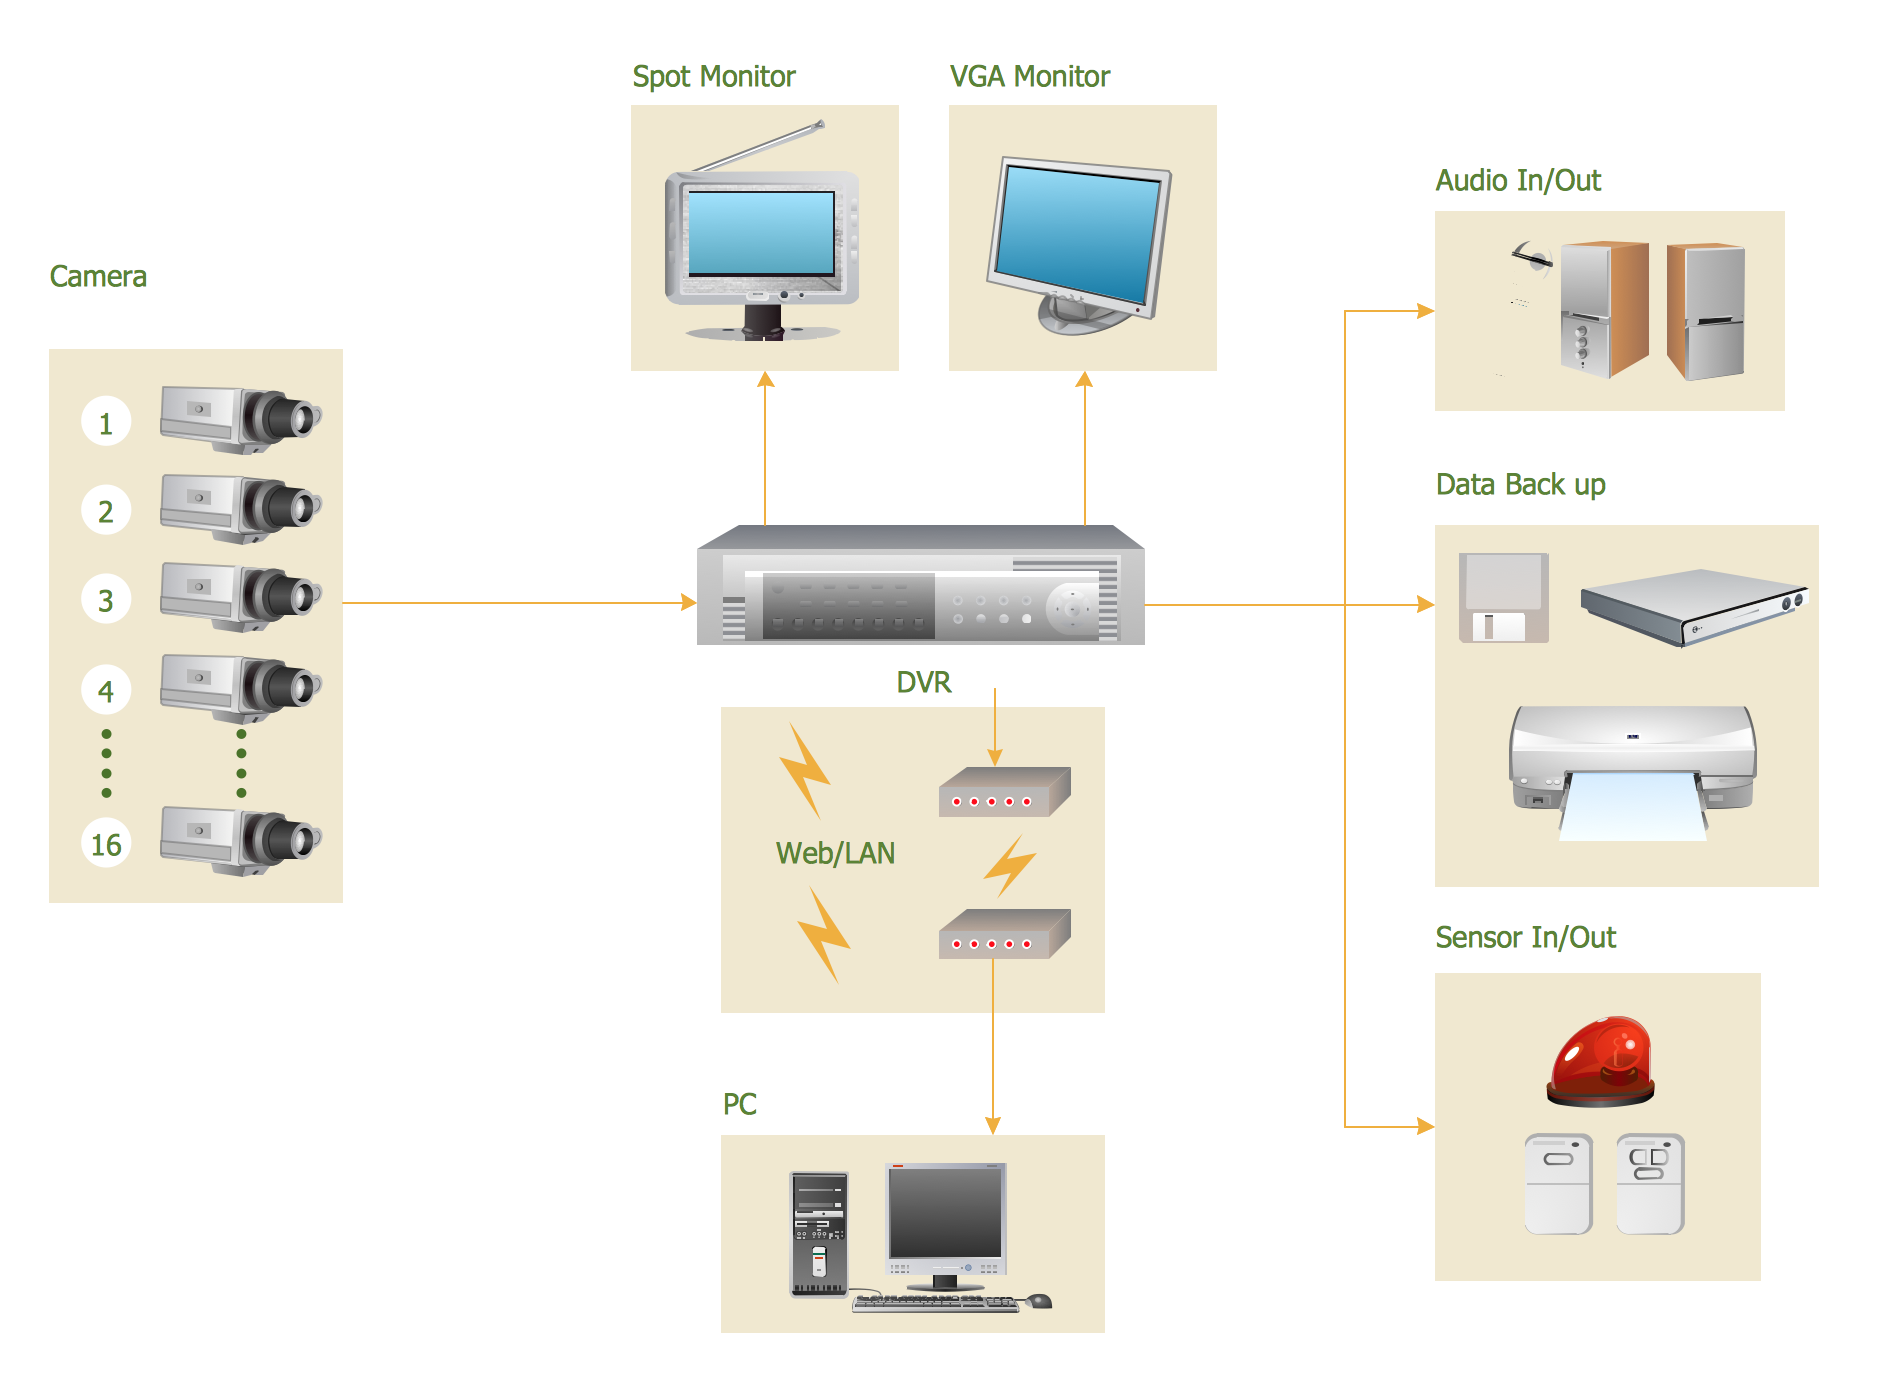 Basic cctv system diagram cctv network diagram example cctv cctv surveillance system diagram ccuart Choice Image